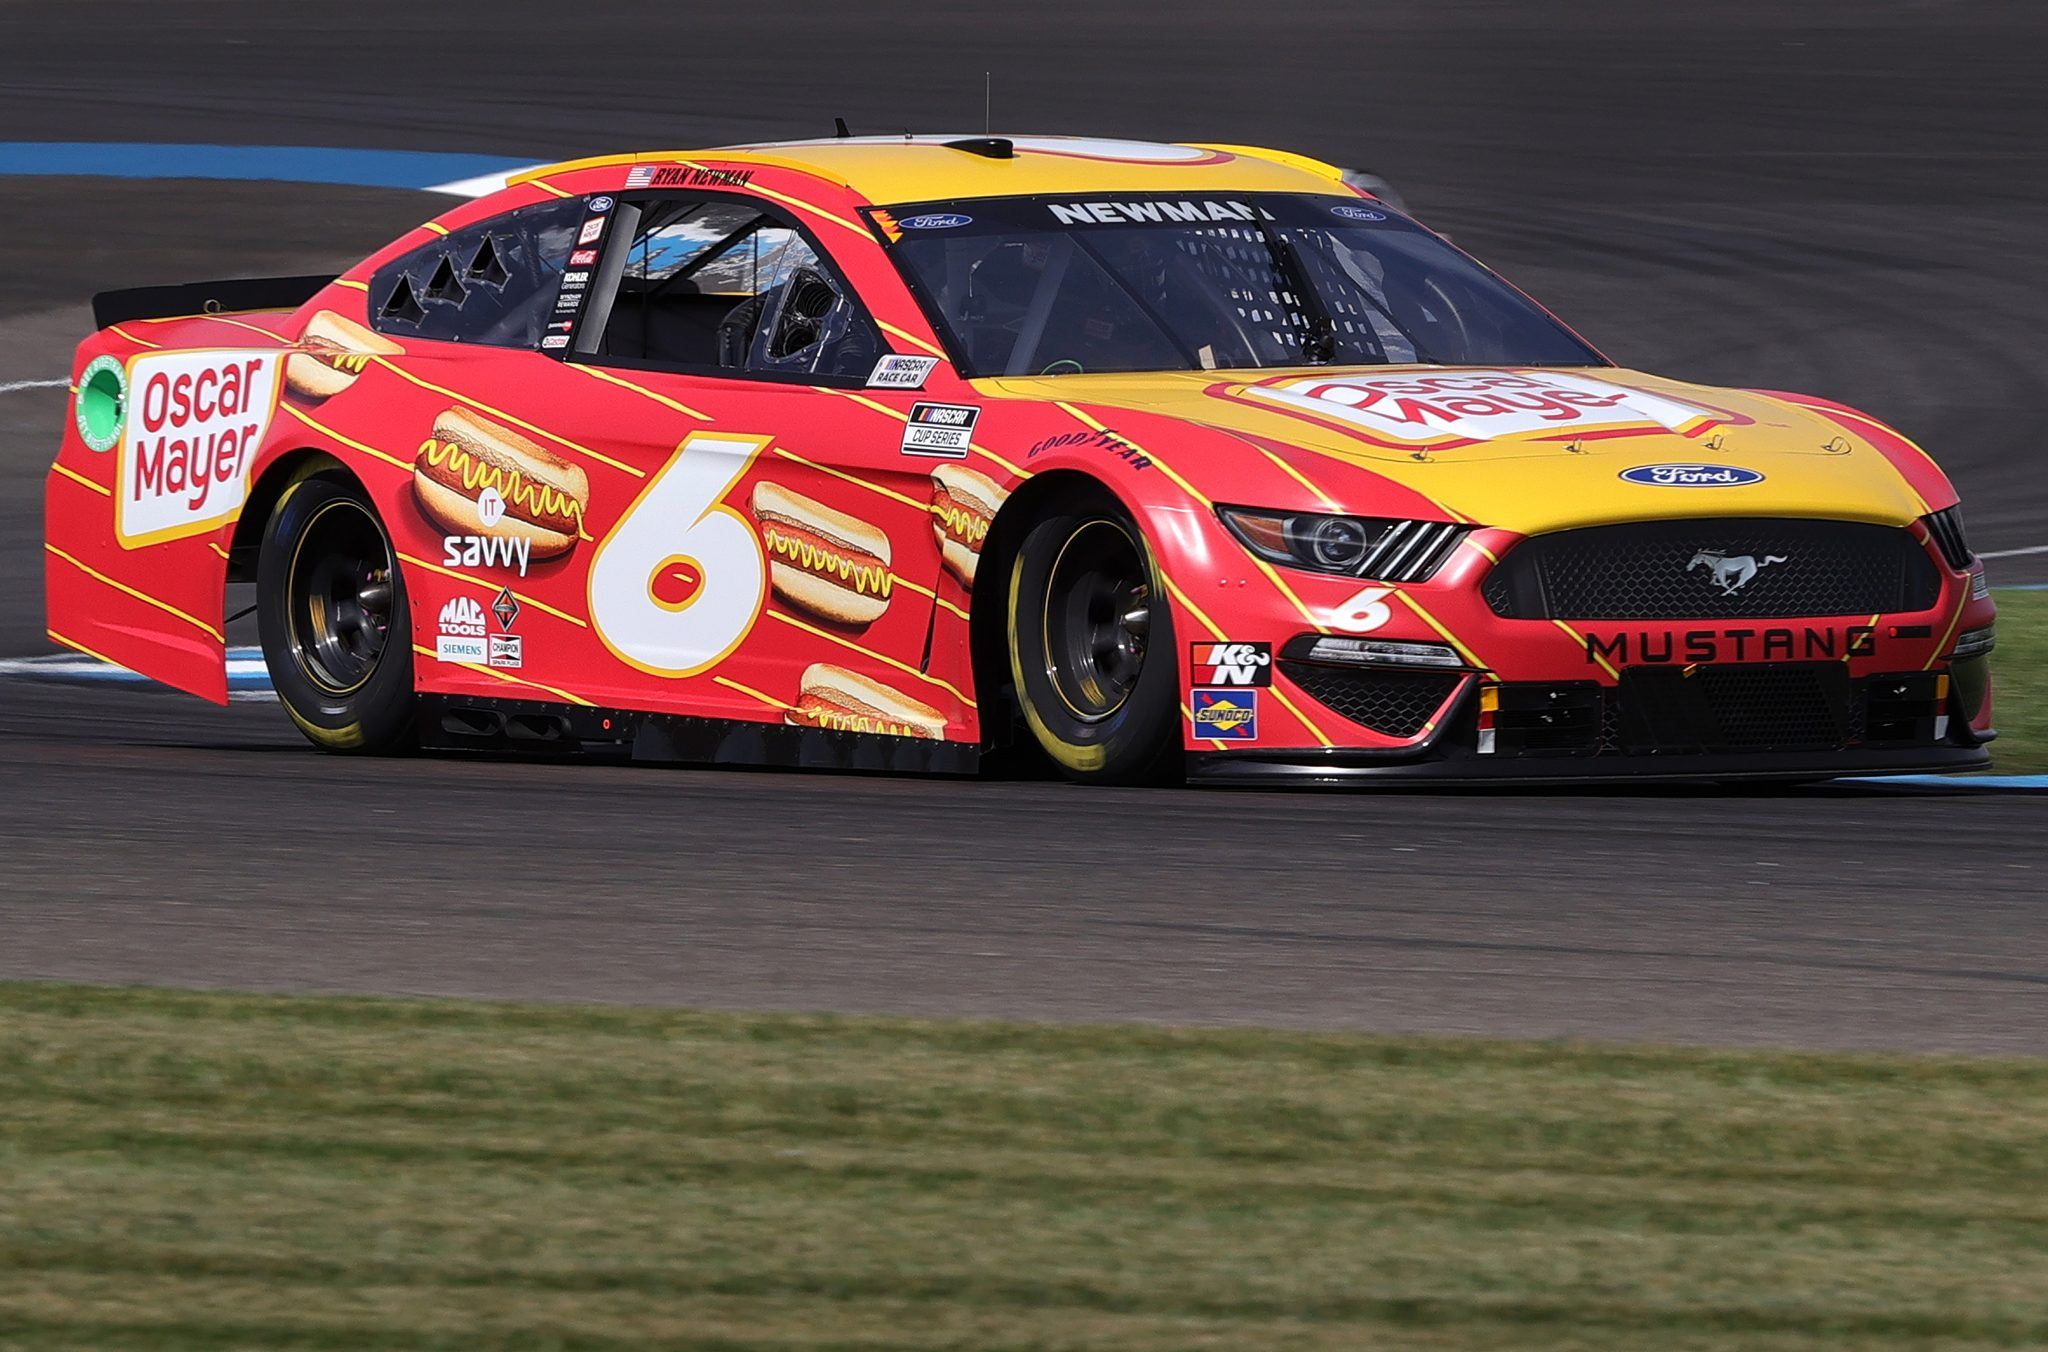 INDIANAPOLIS, INDIANA - AUGUST 14: Ryan Newman, driver of the #6 Oscar Mayer Hot Dogs Ford, drives during practice for the NASCAR Cup Series Verizon 200 at the Brickyard at Indianapolis Motor Speedway on August 14, 2021 in Indianapolis, Indiana. (Photo by Stacy Revere/Getty Images) | Getty Images